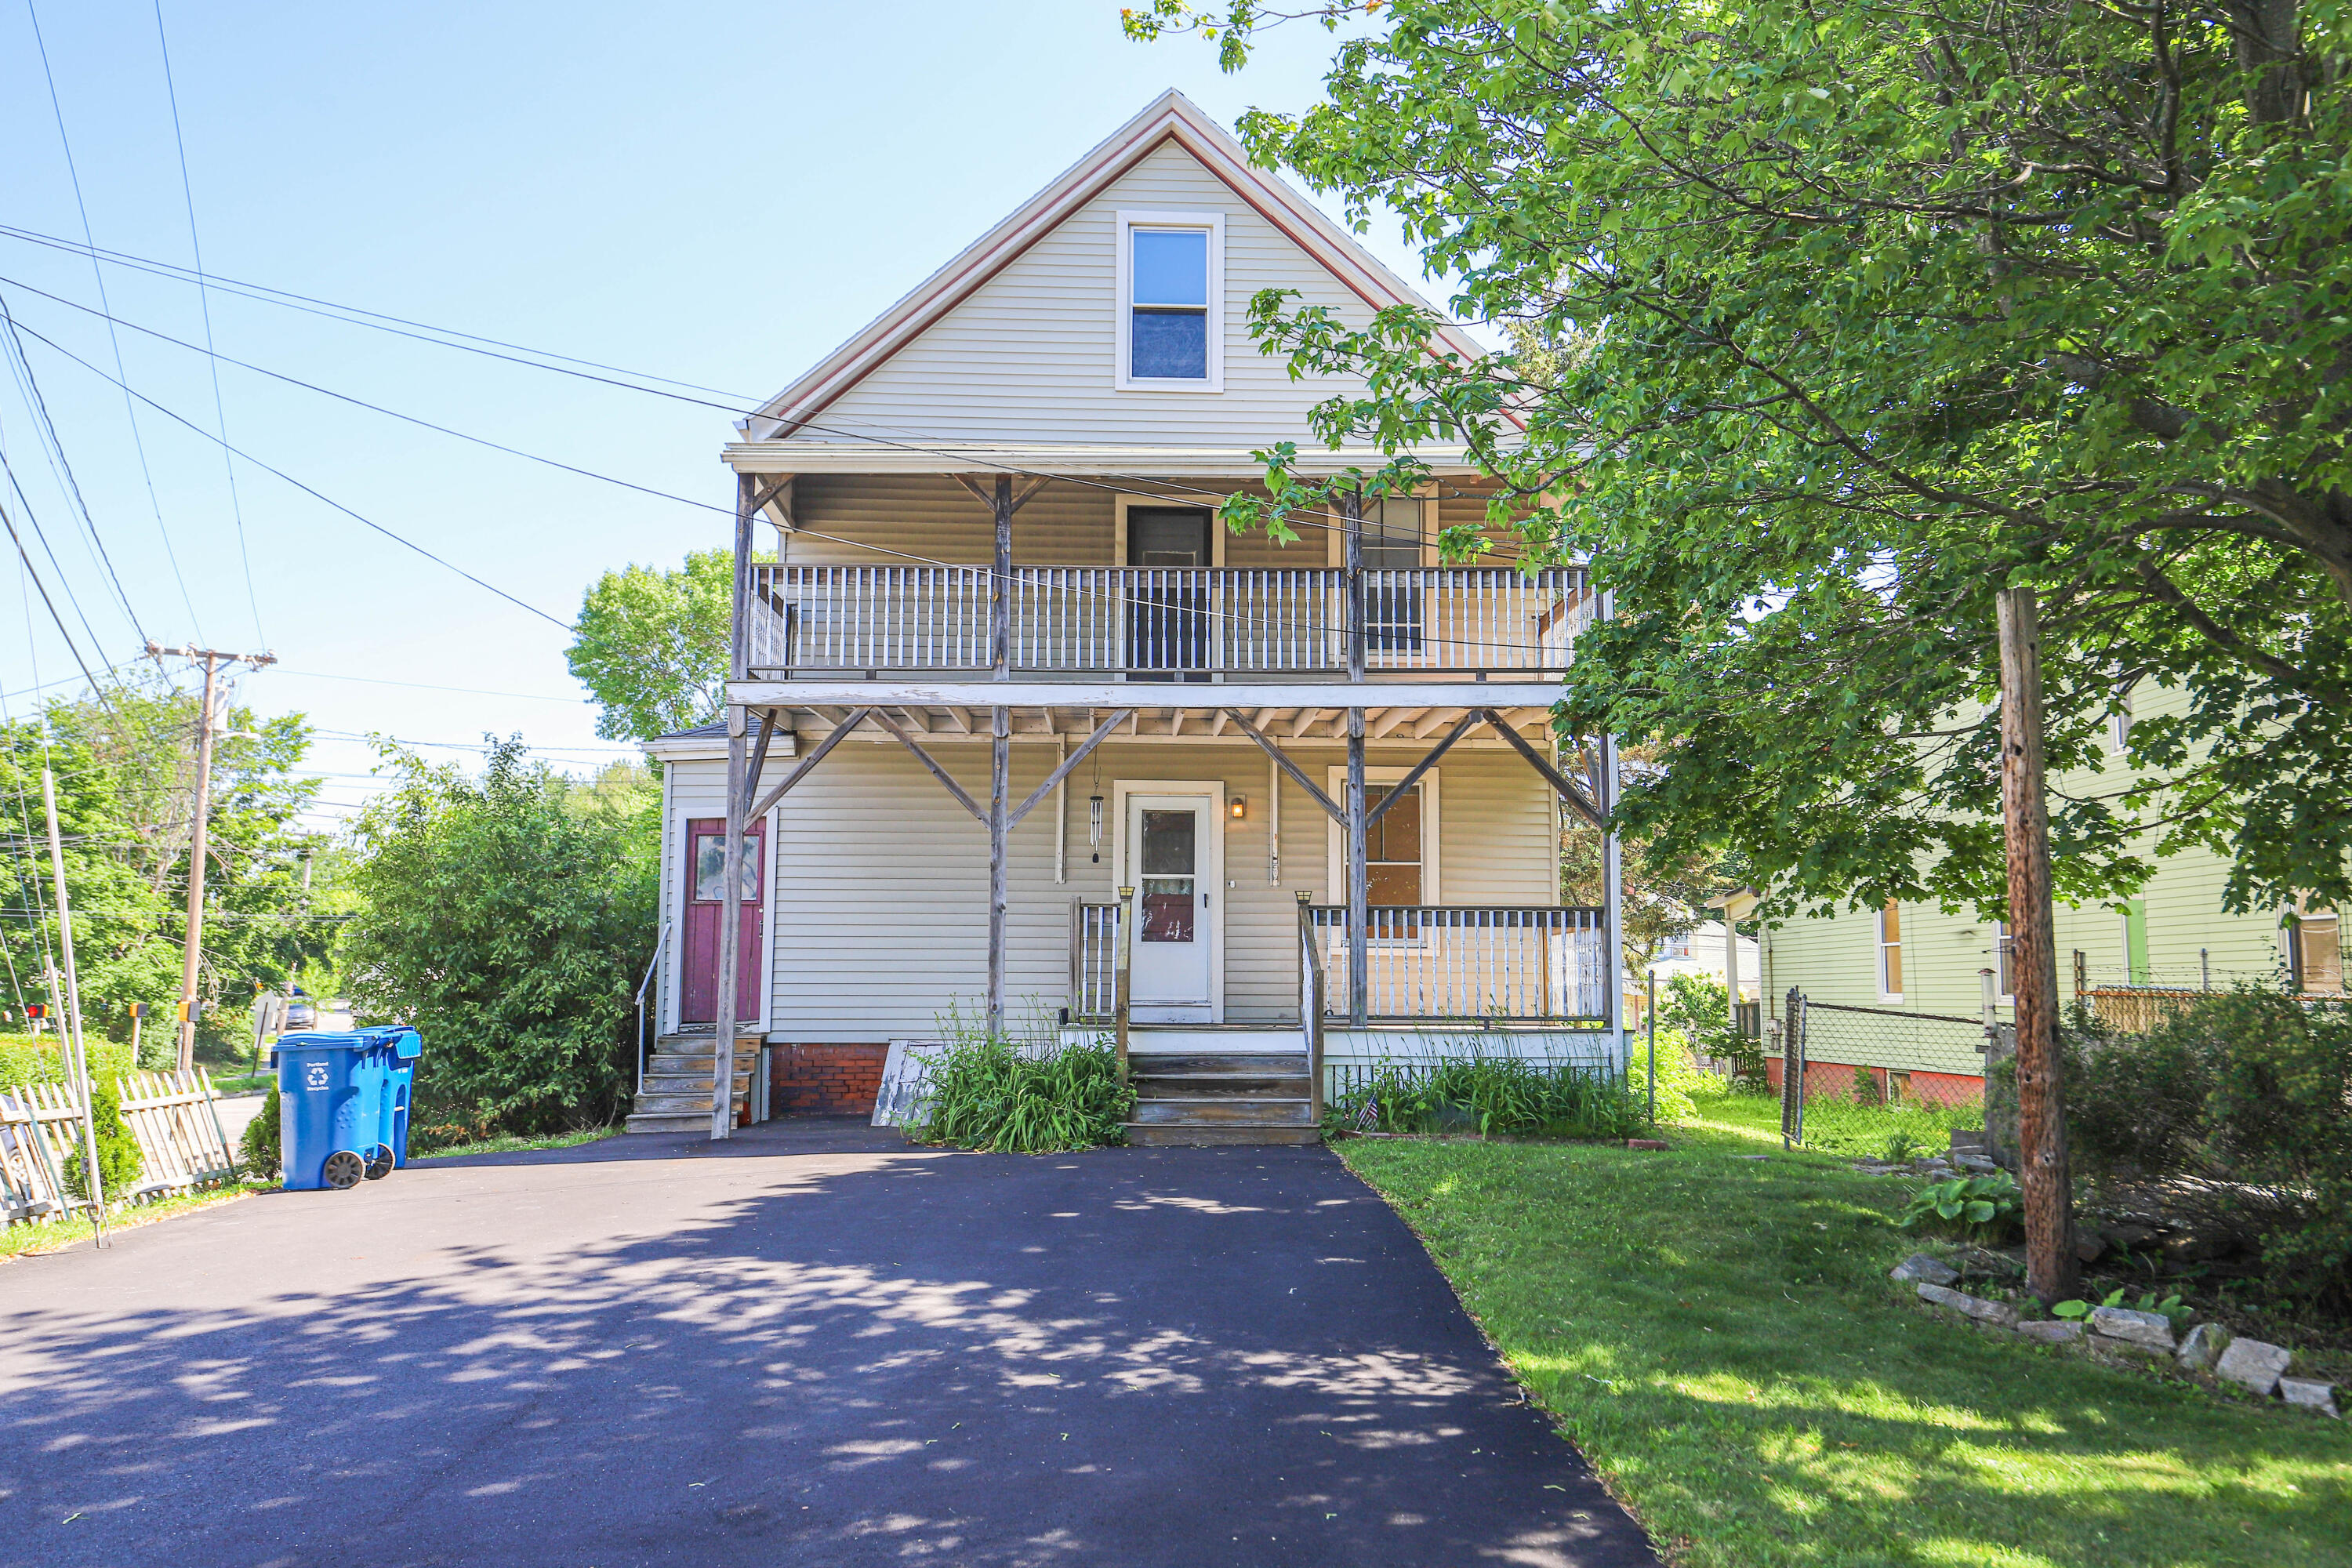 Main image for MLS listing 1496849